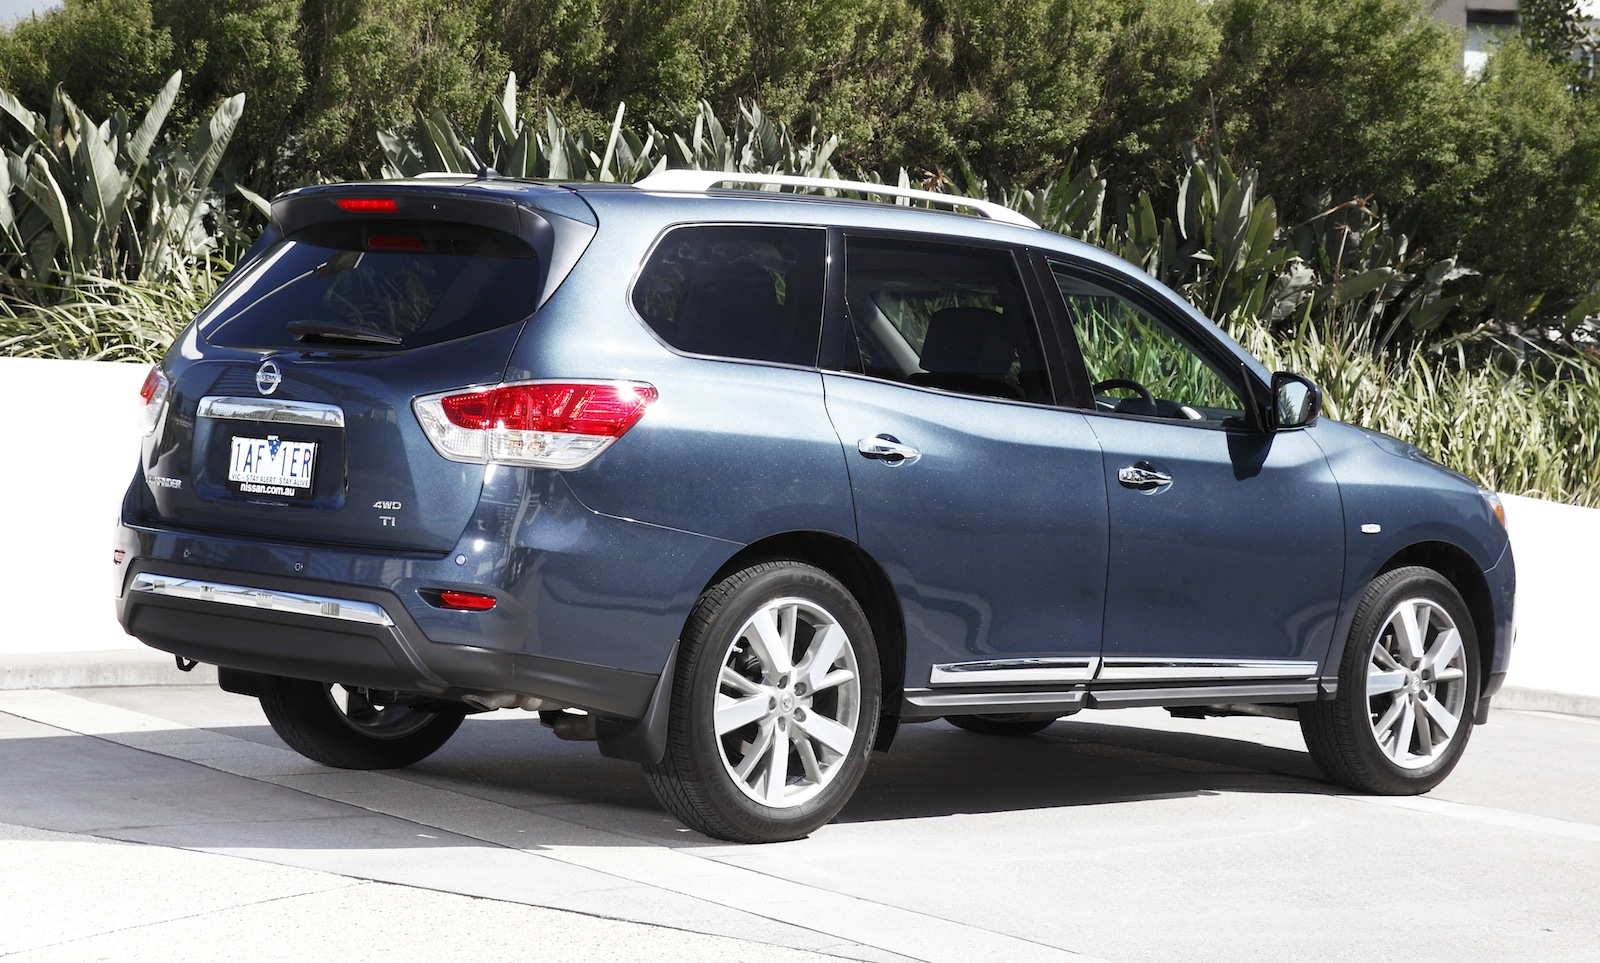 Nissan Pathfinder Pricing And Specifications Photos